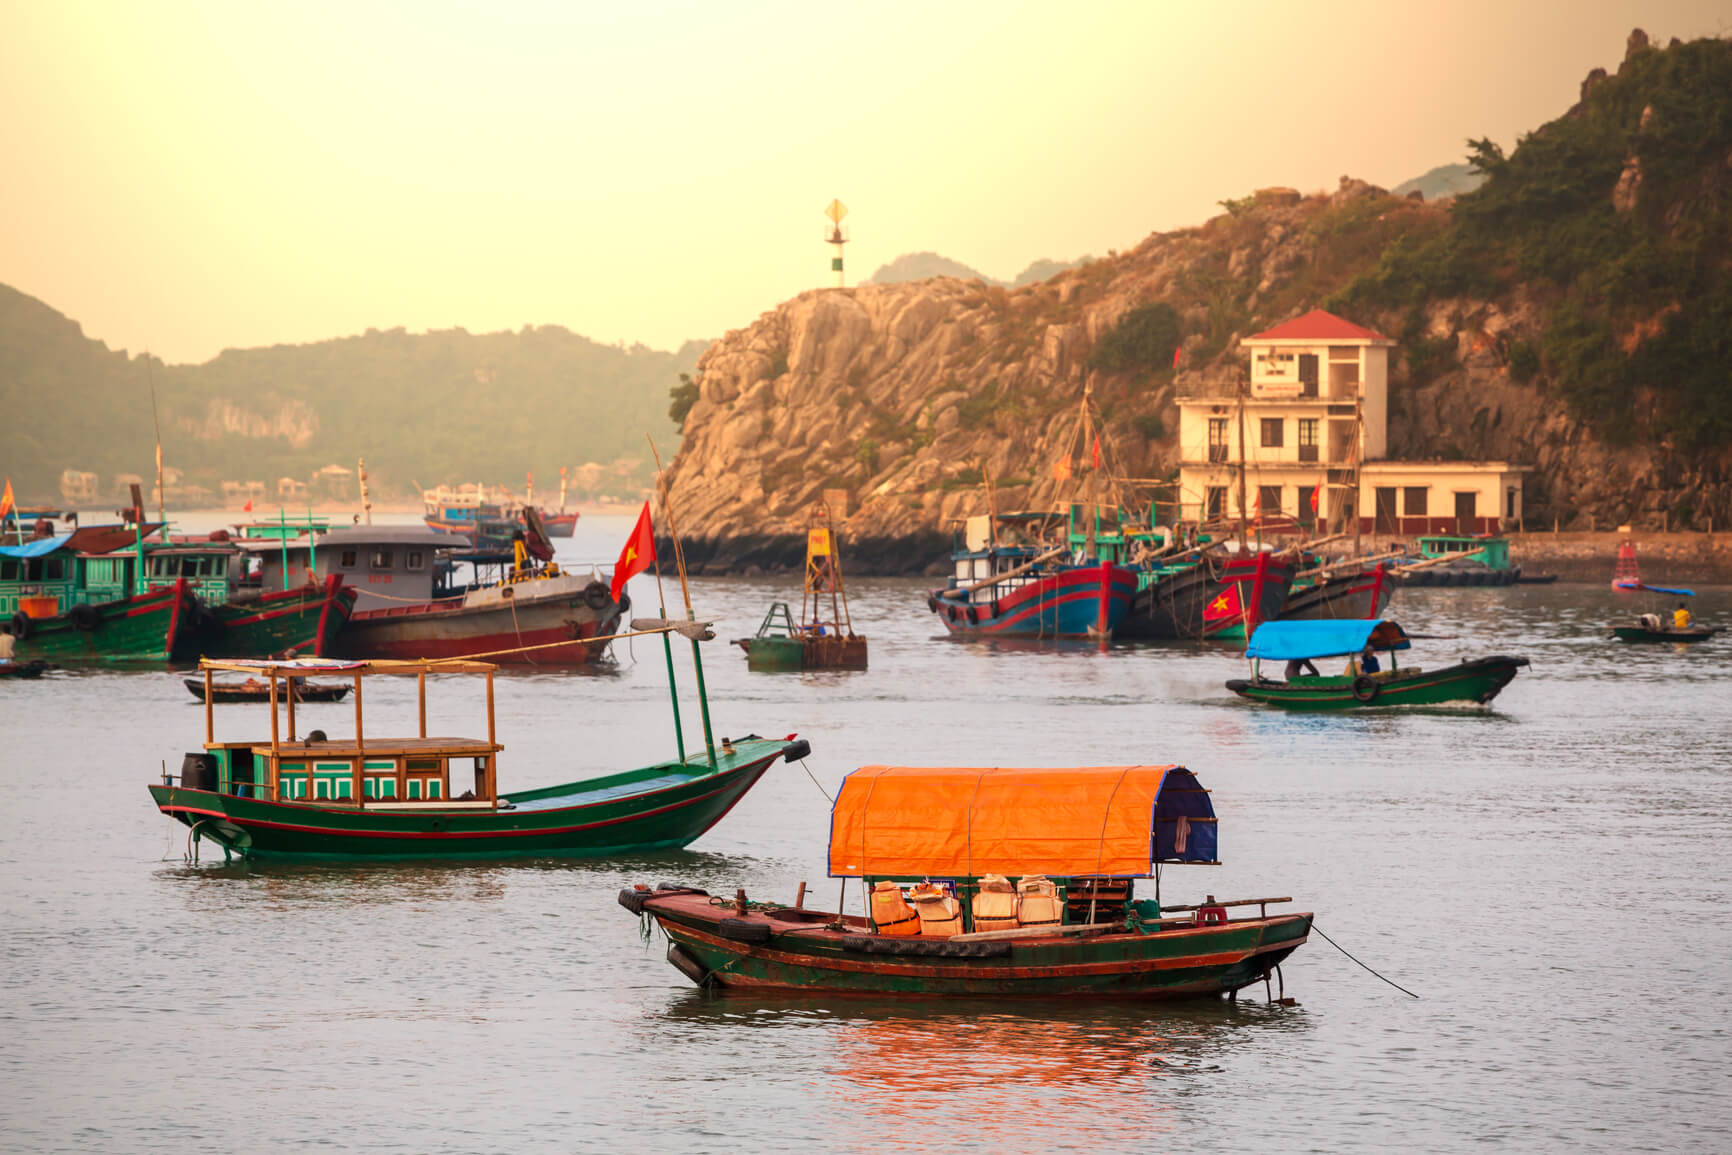 London, UK to Hanoi, Vietnam for only £307 roundtrip